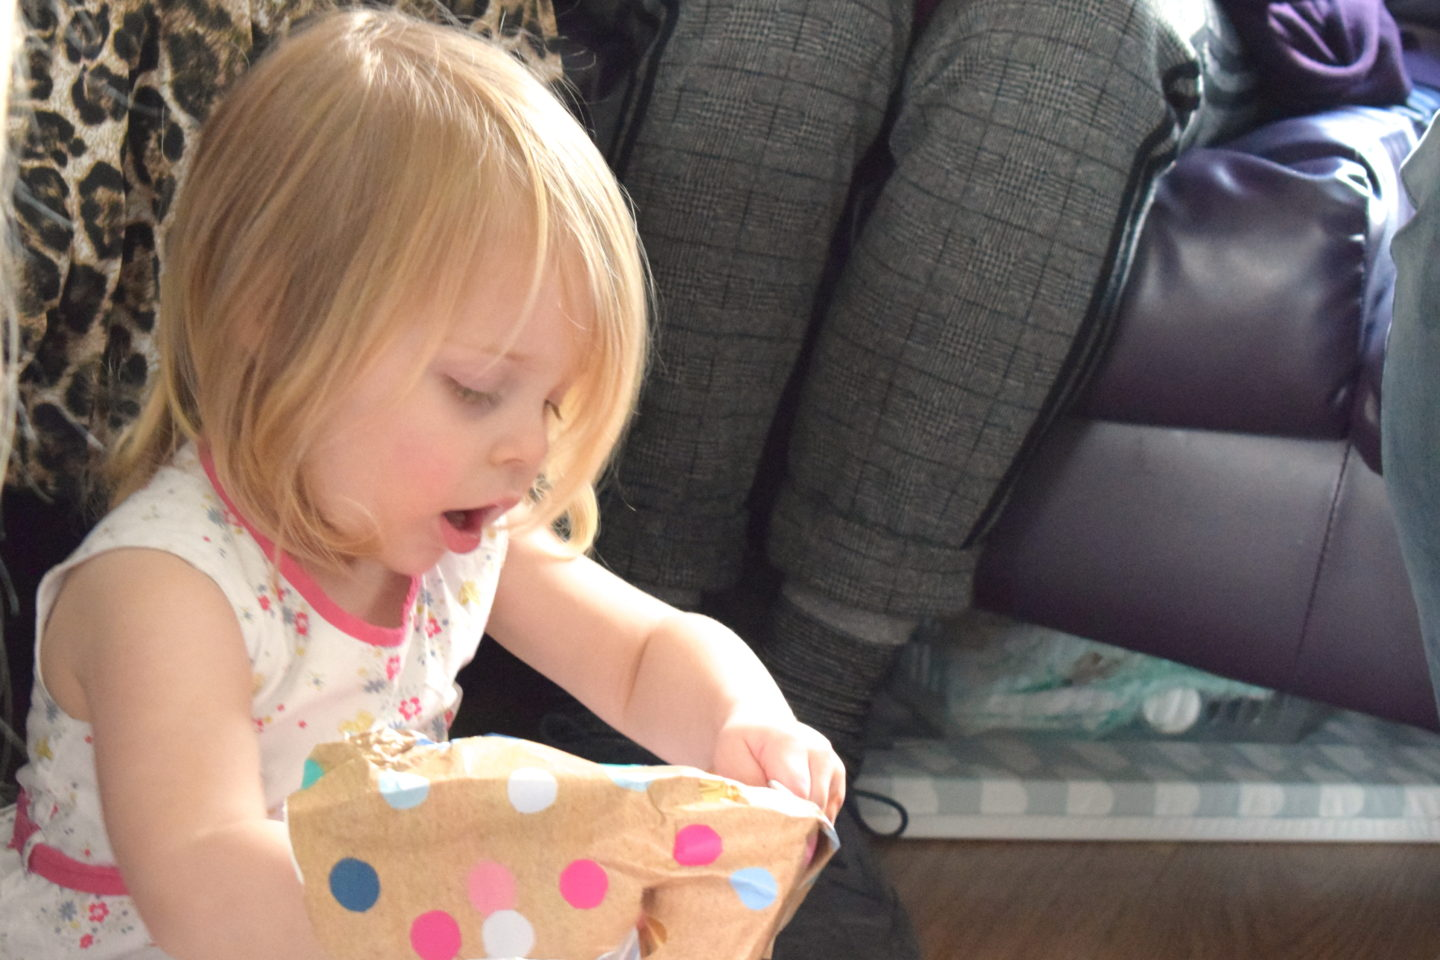 Two year old in a party dress, opening a present